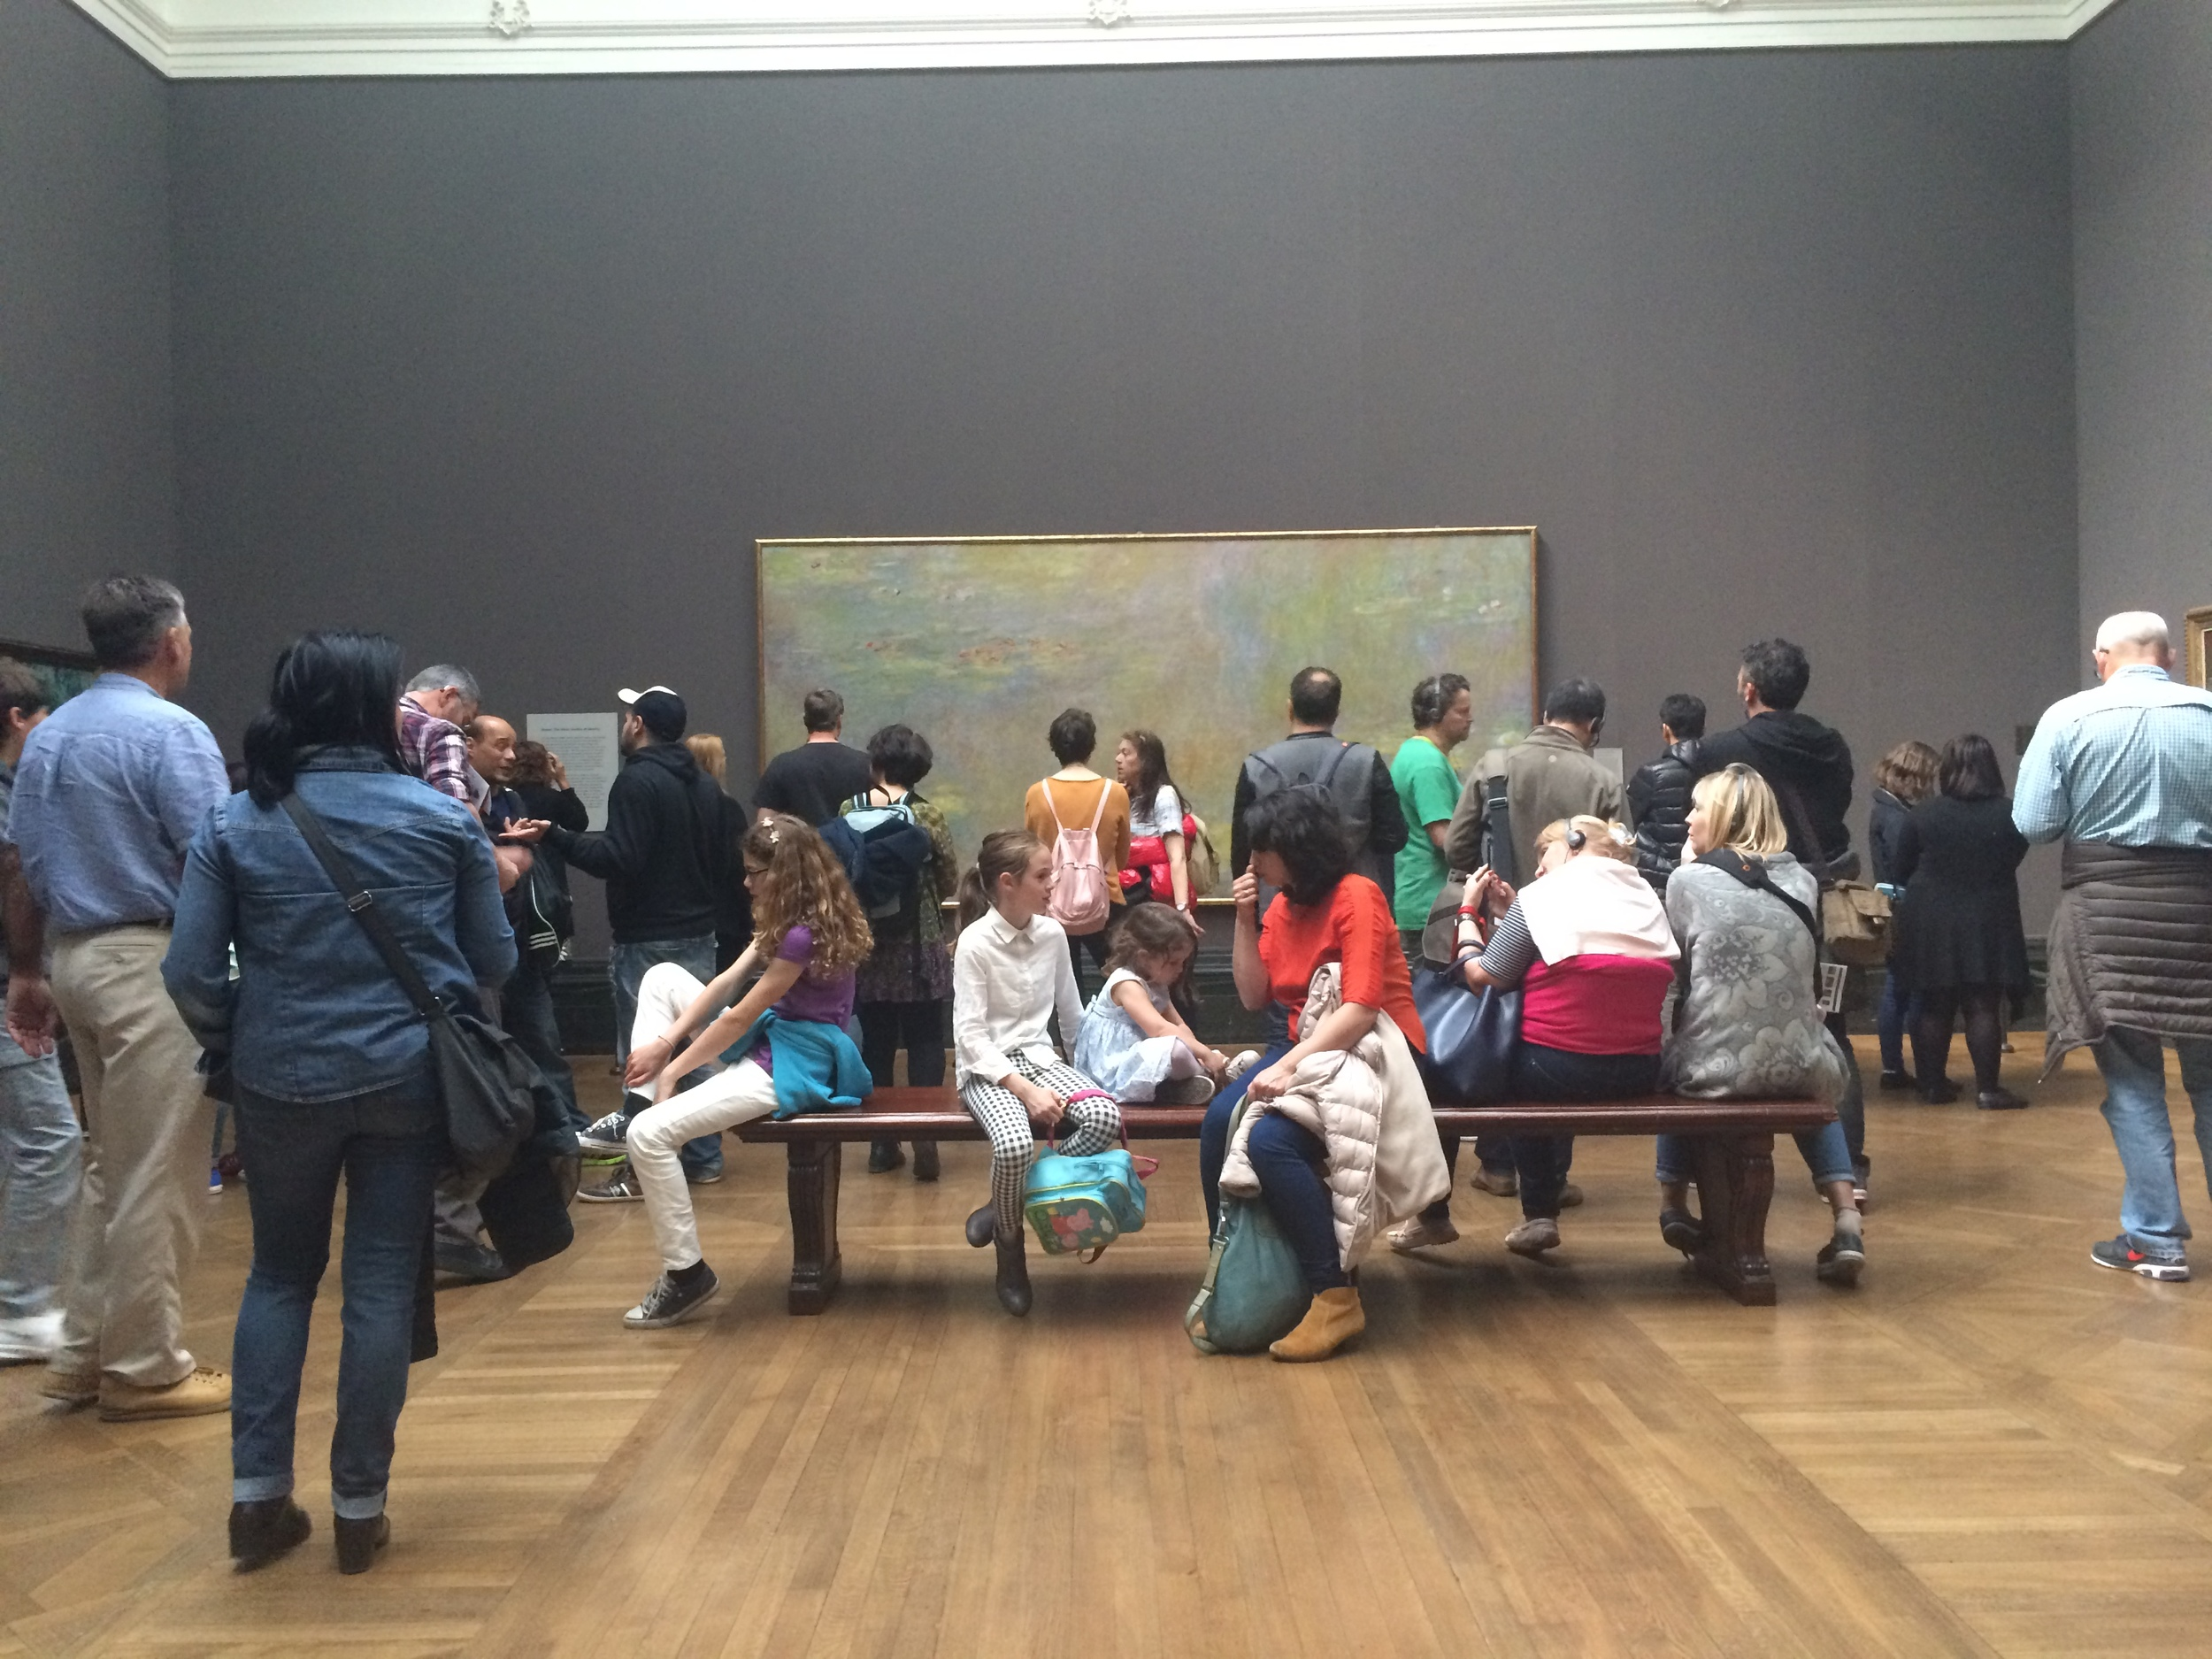 bezoekers in National Gallery London - Museumpodcast